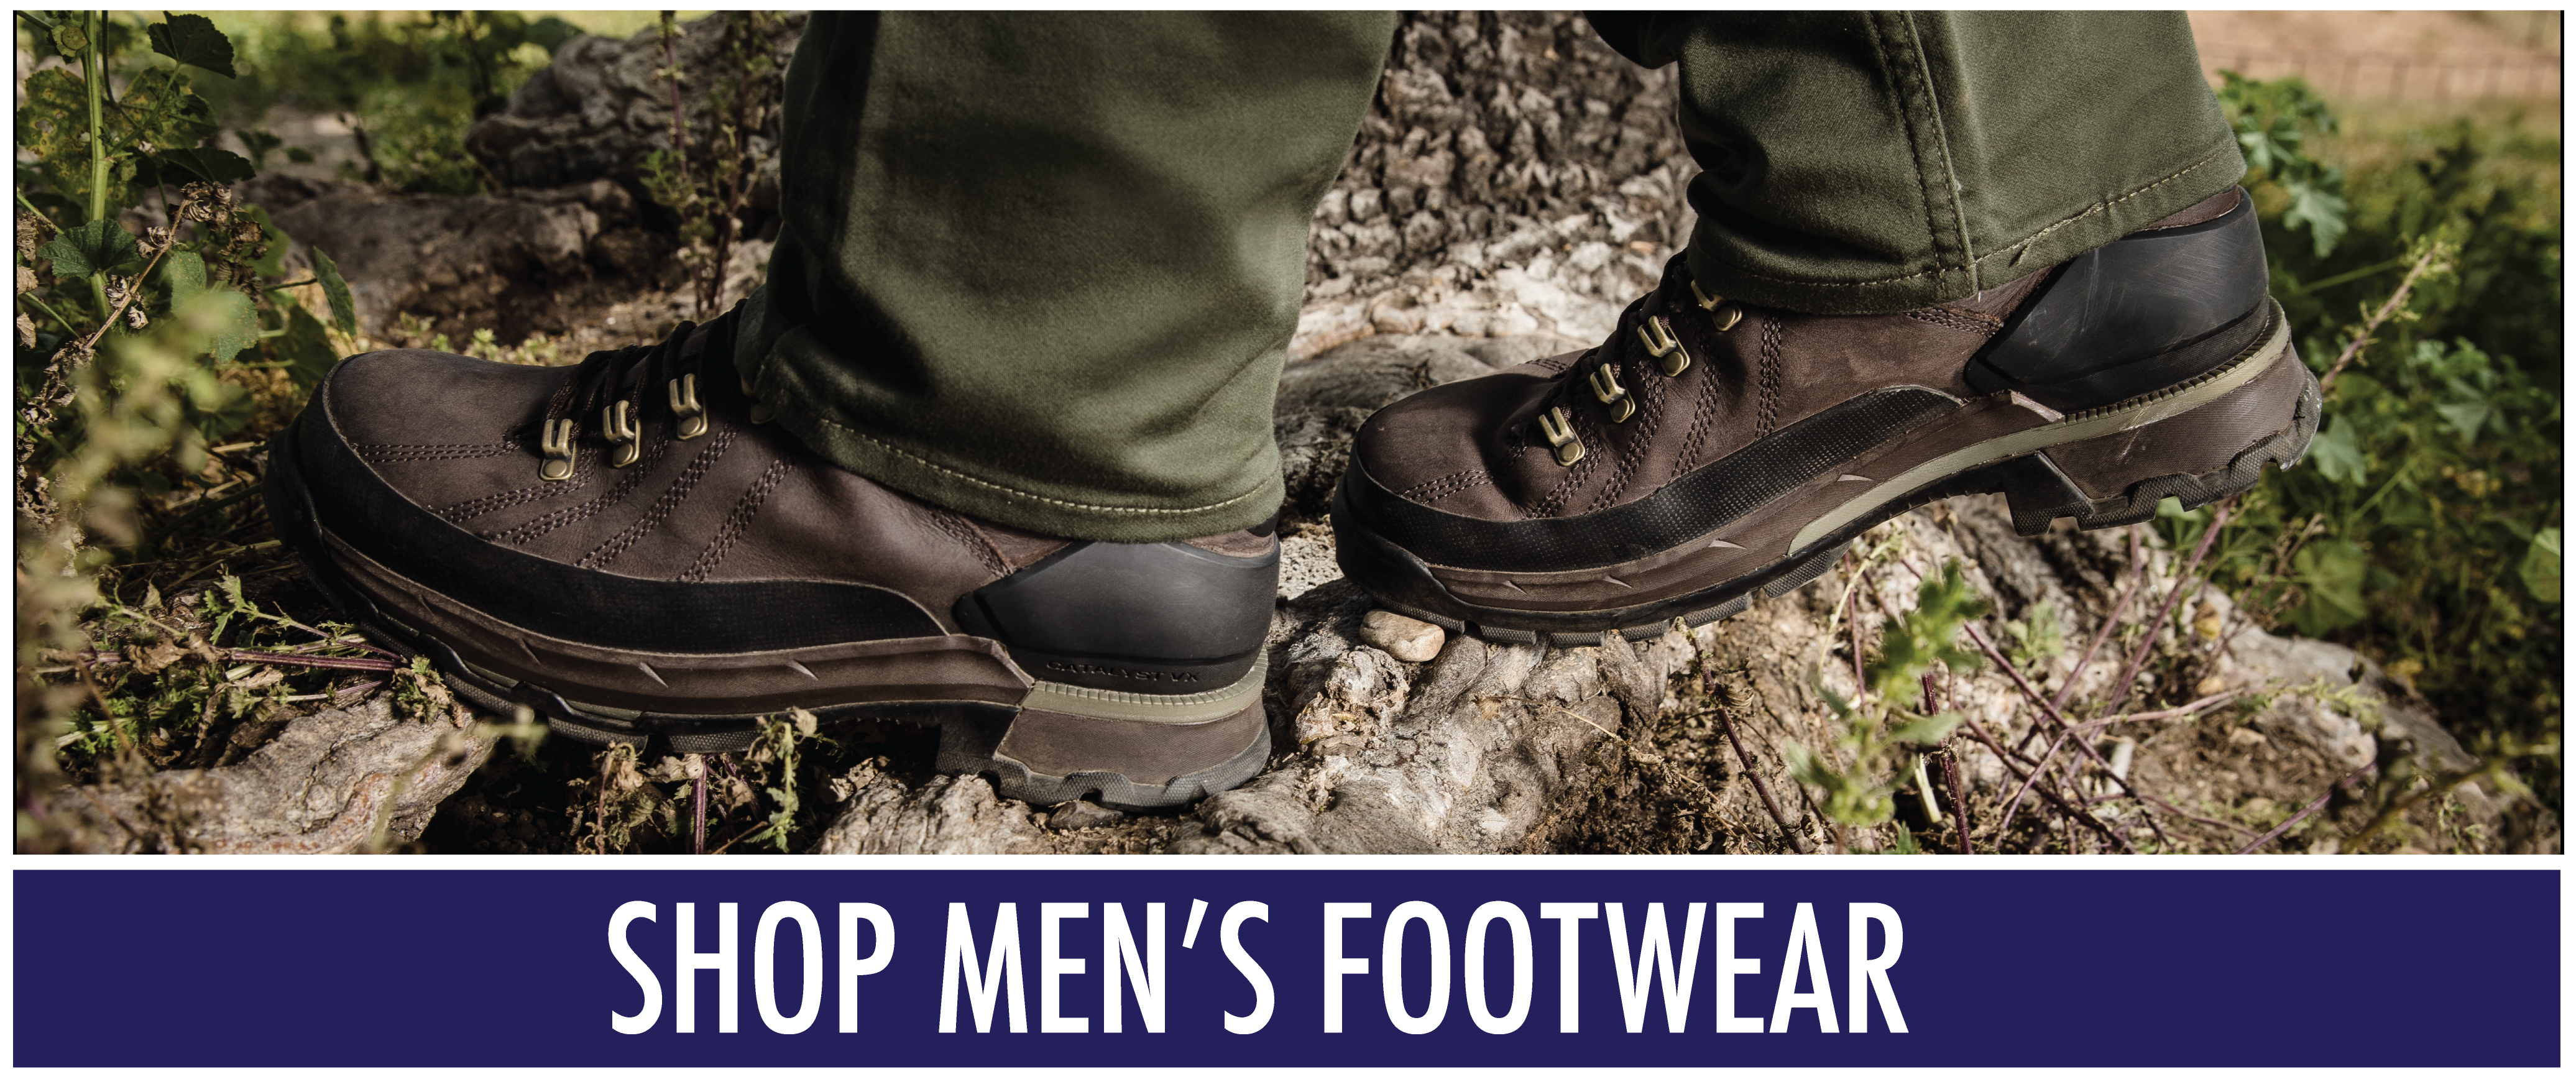 shop-men-s-footwear.jpg